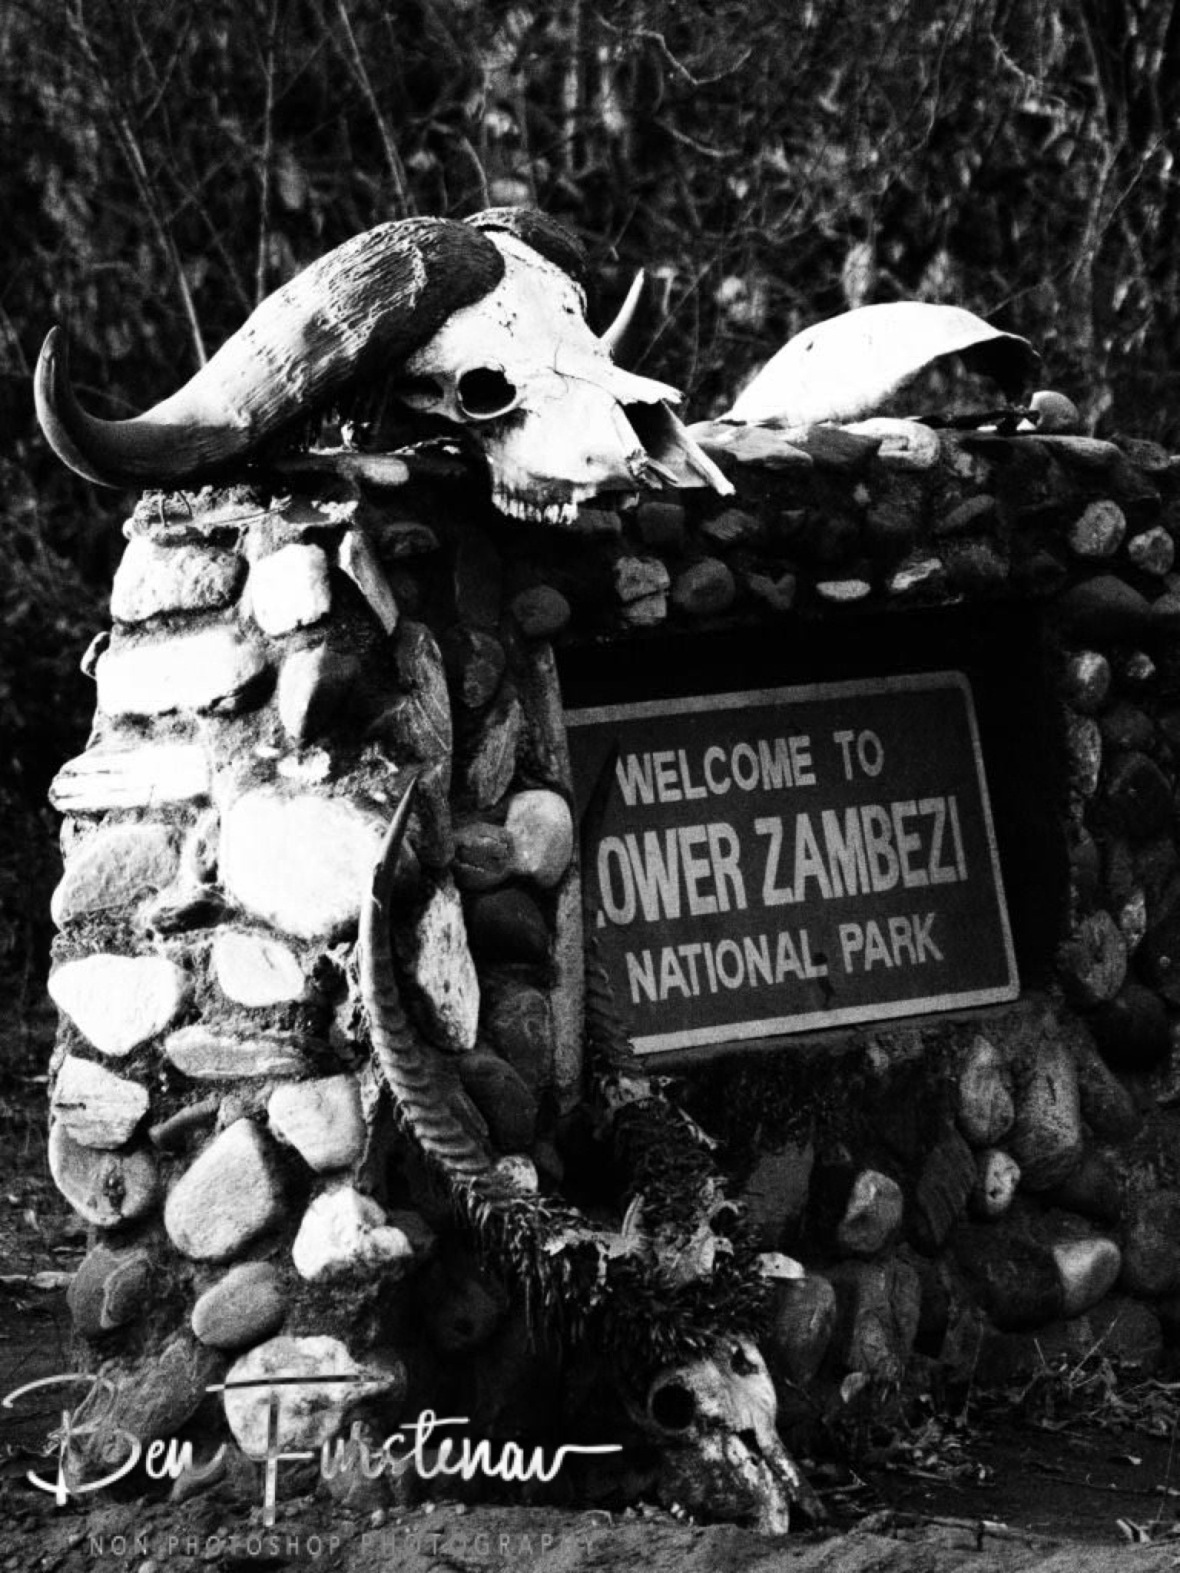 Clear warning, Lower Zambezi National Park Zambia